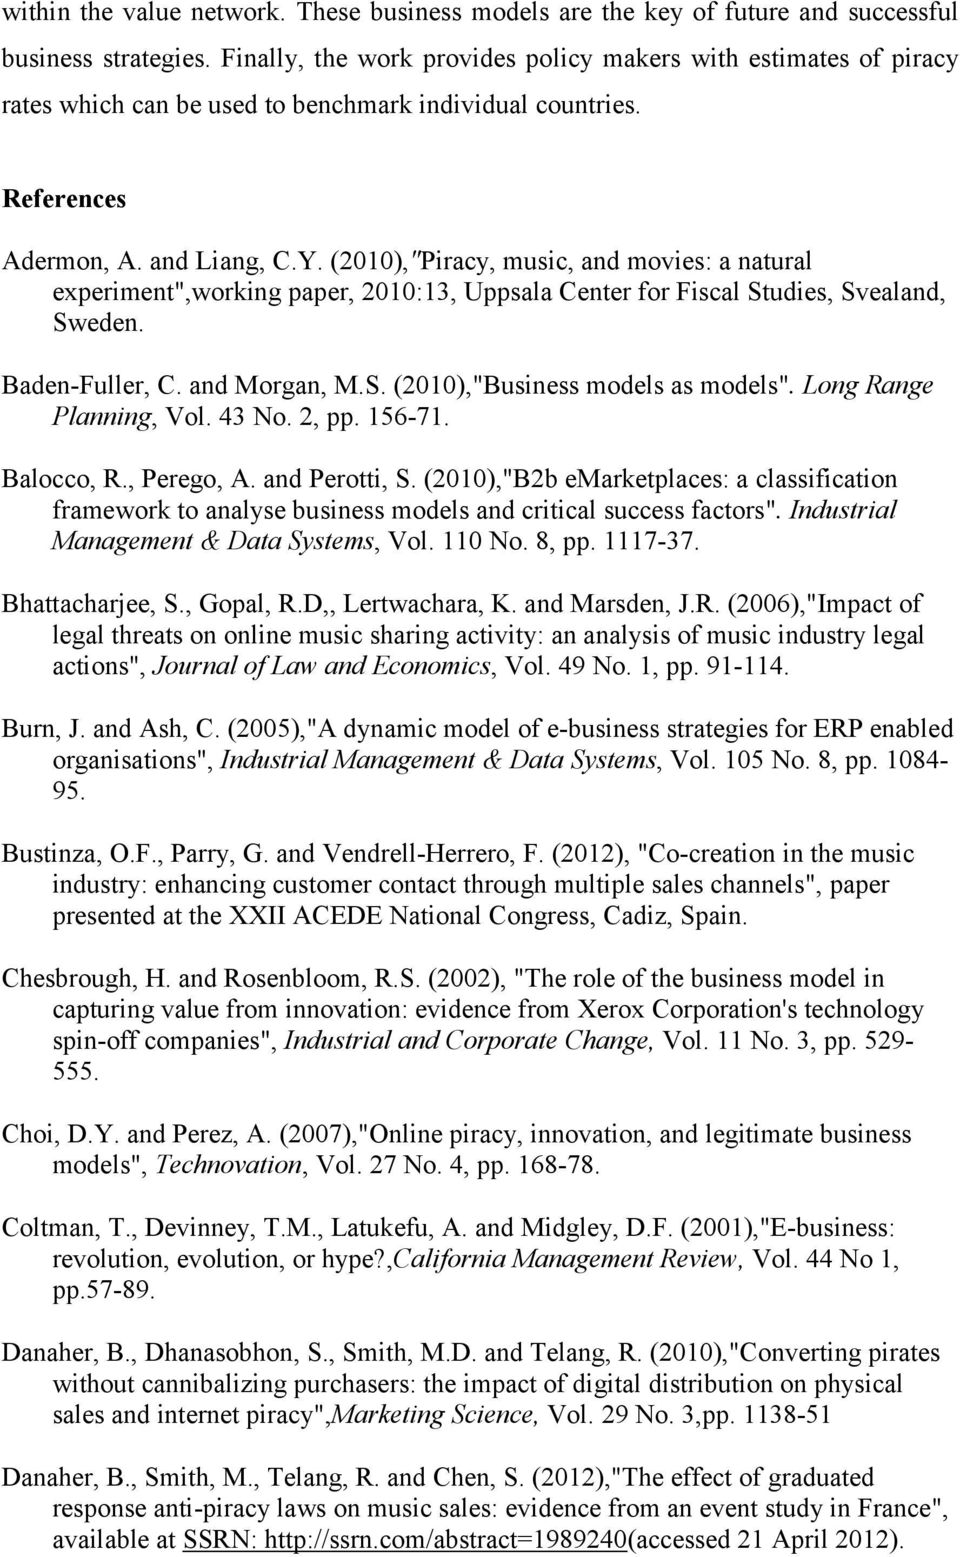 "(2010),""Piracy, music, and movies: a natural experiment"",working paper, 2010:13, Uppsala Center for Fiscal Studies, Svealand, Sweden. Baden-Fuller, C. and Morgan, M.S. (2010),""Business models as models""."